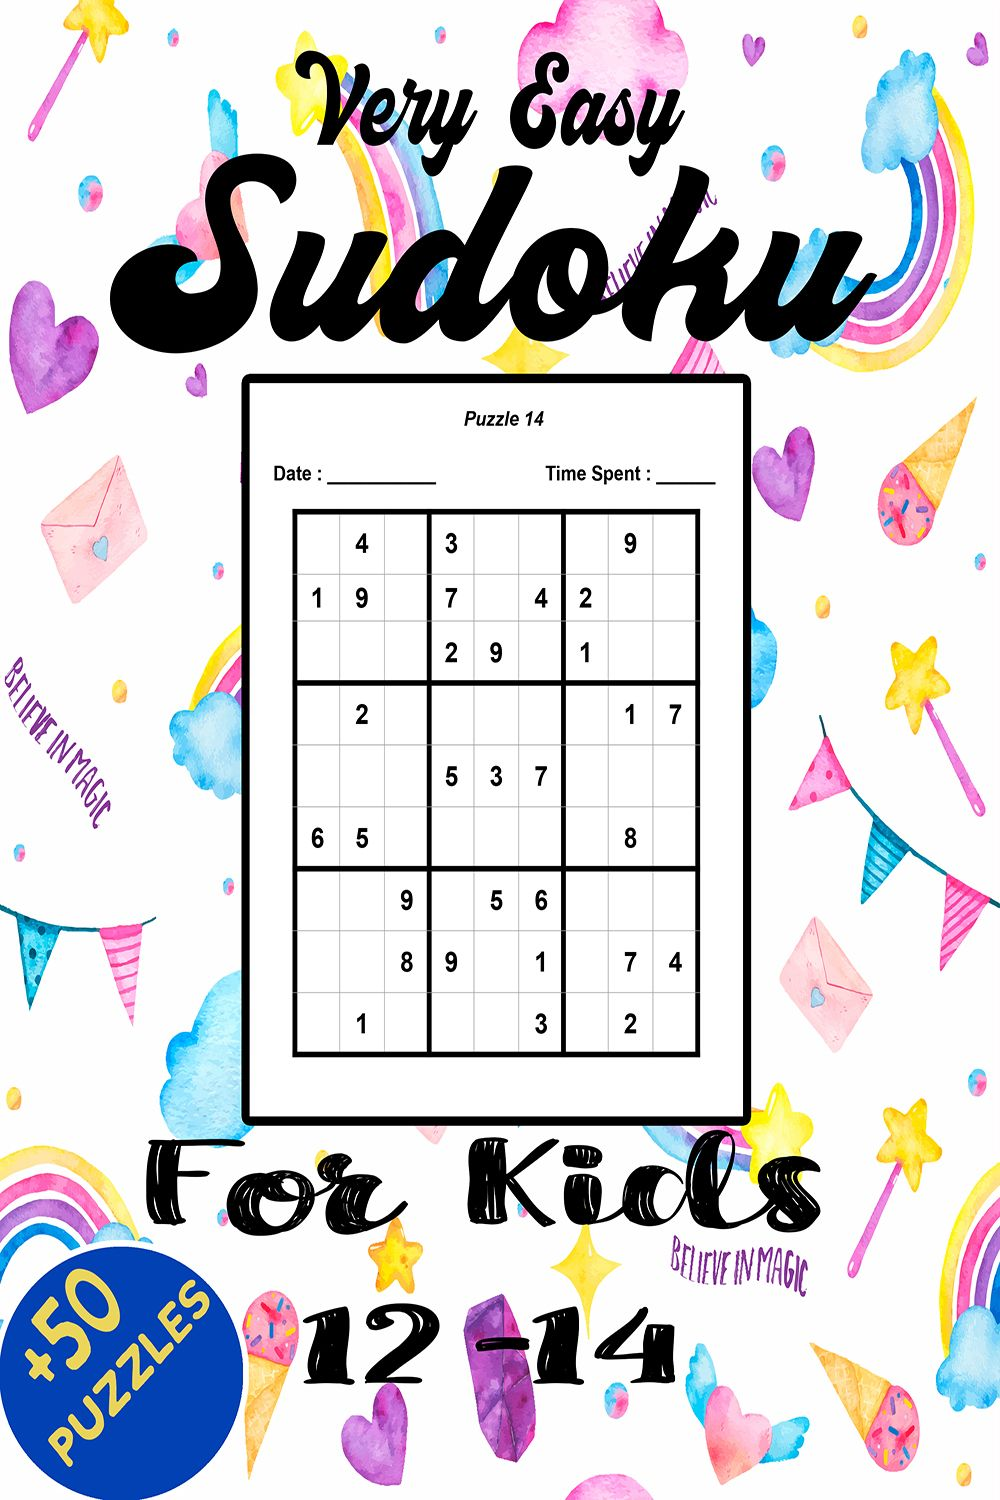 Very Easy Sudoku For Kids 12 14 With Answers Book Gifts Sudoku Kids